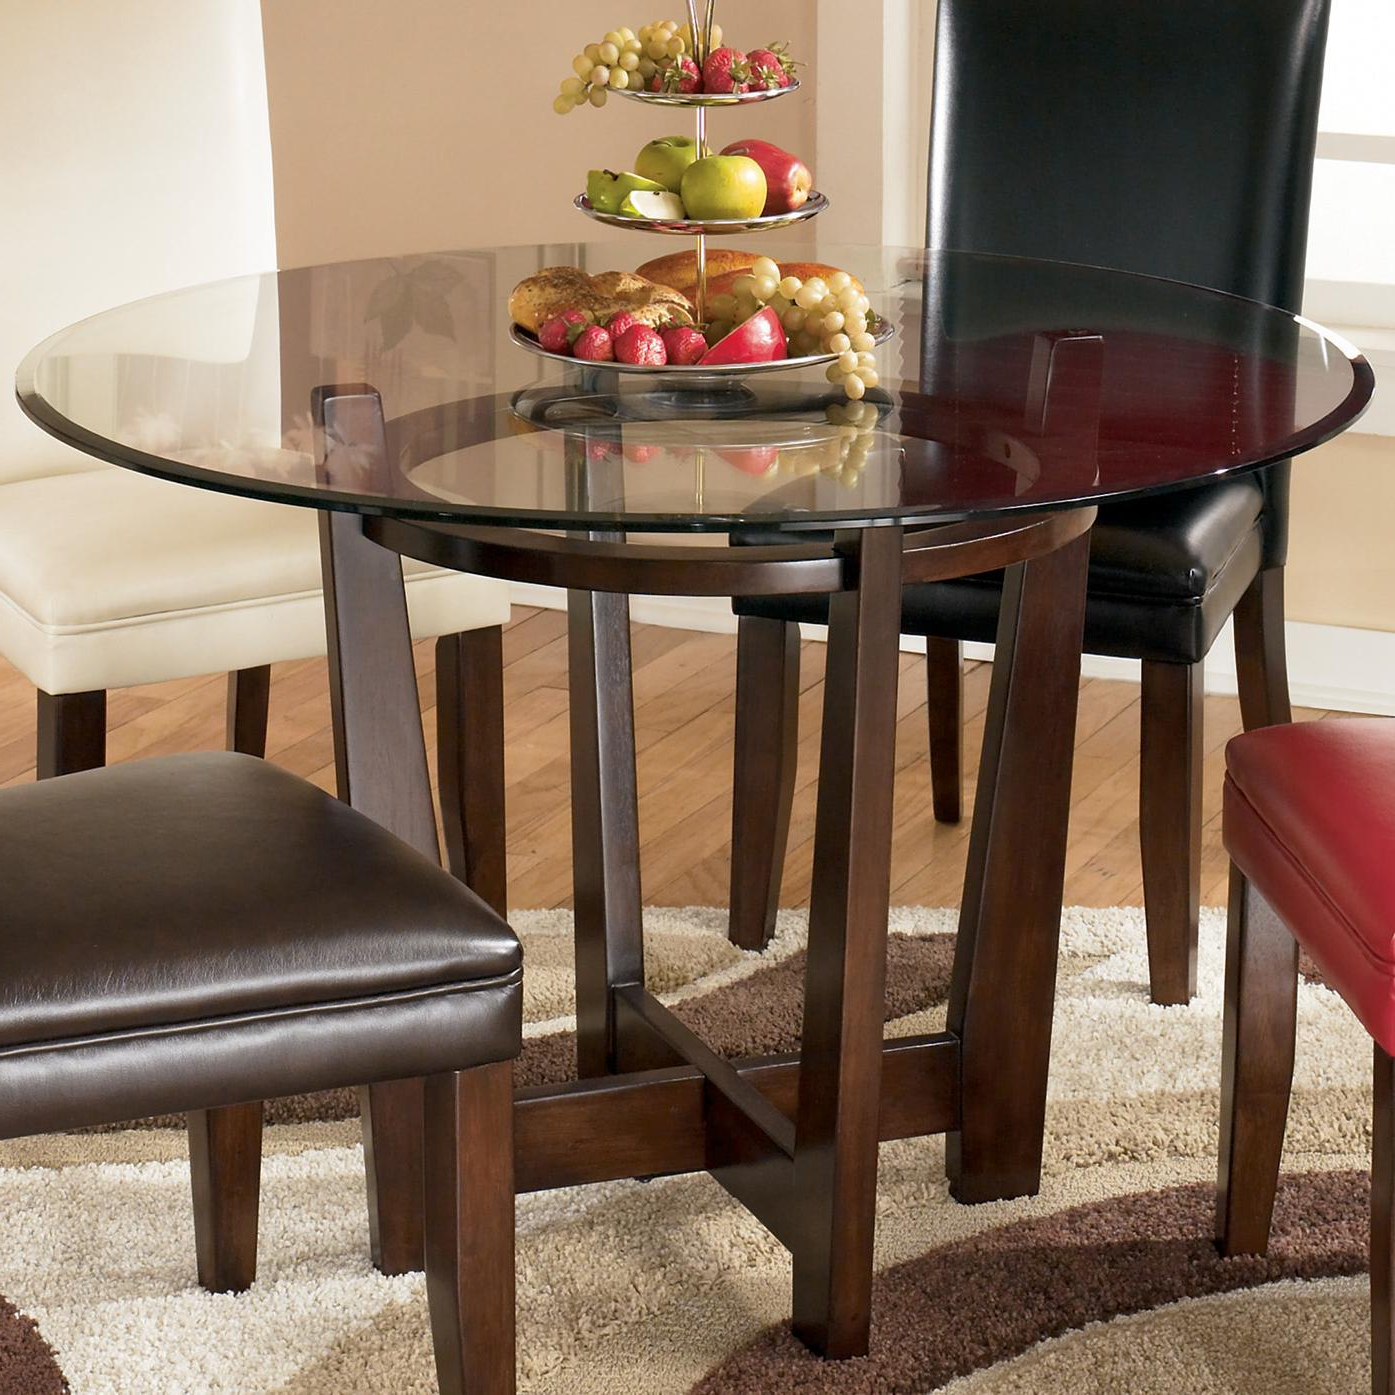 Round Dining Tables With Glass Top Throughout Recent Charrell Round Glass Top Table (View 9 of 30)